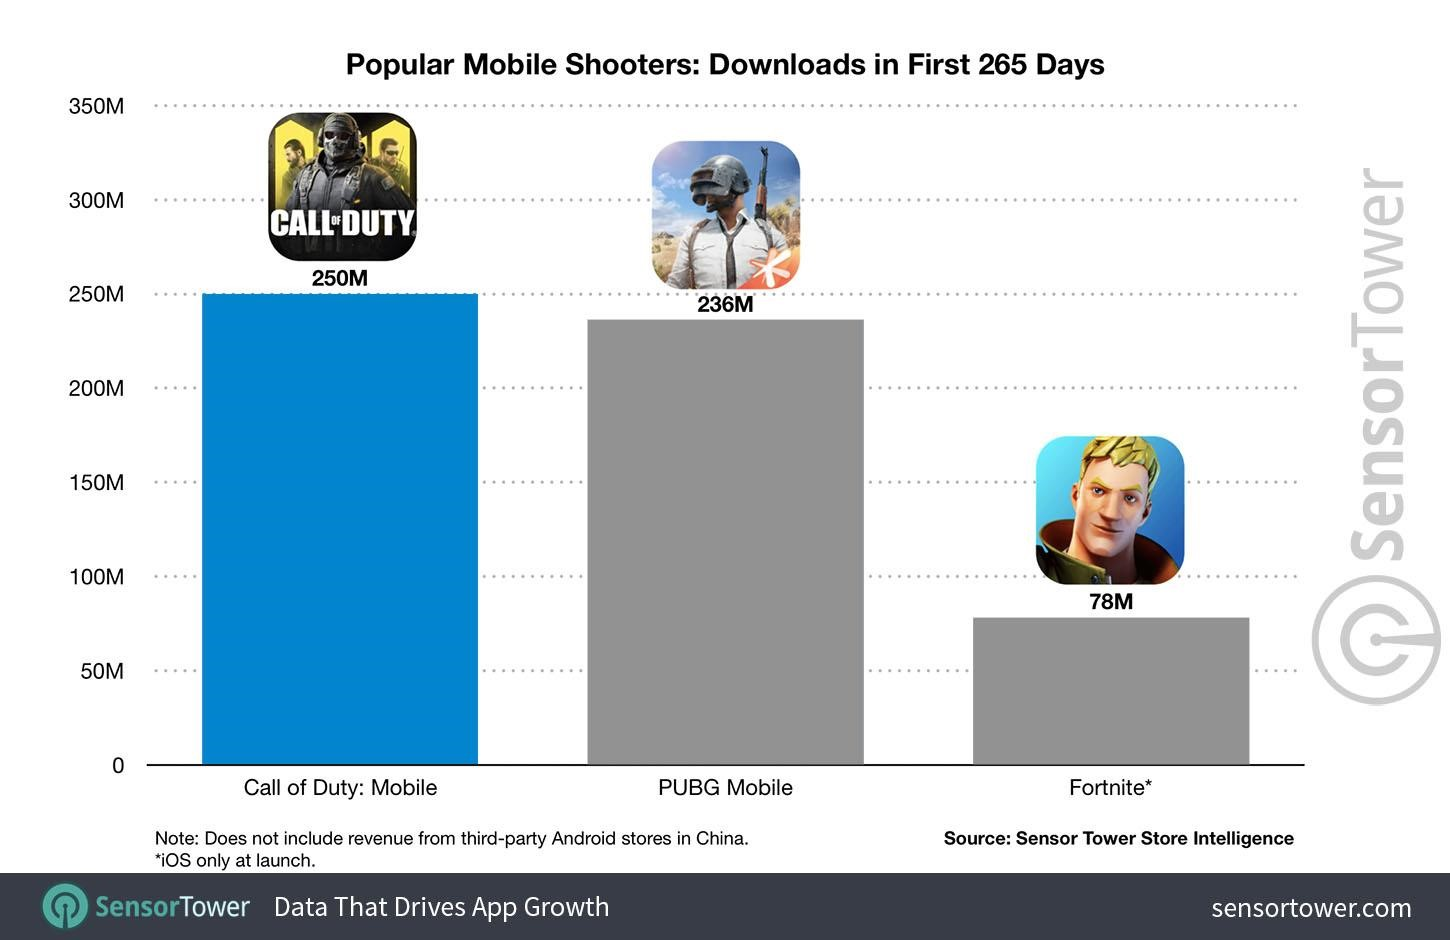 shooters-game-download-in-365-days